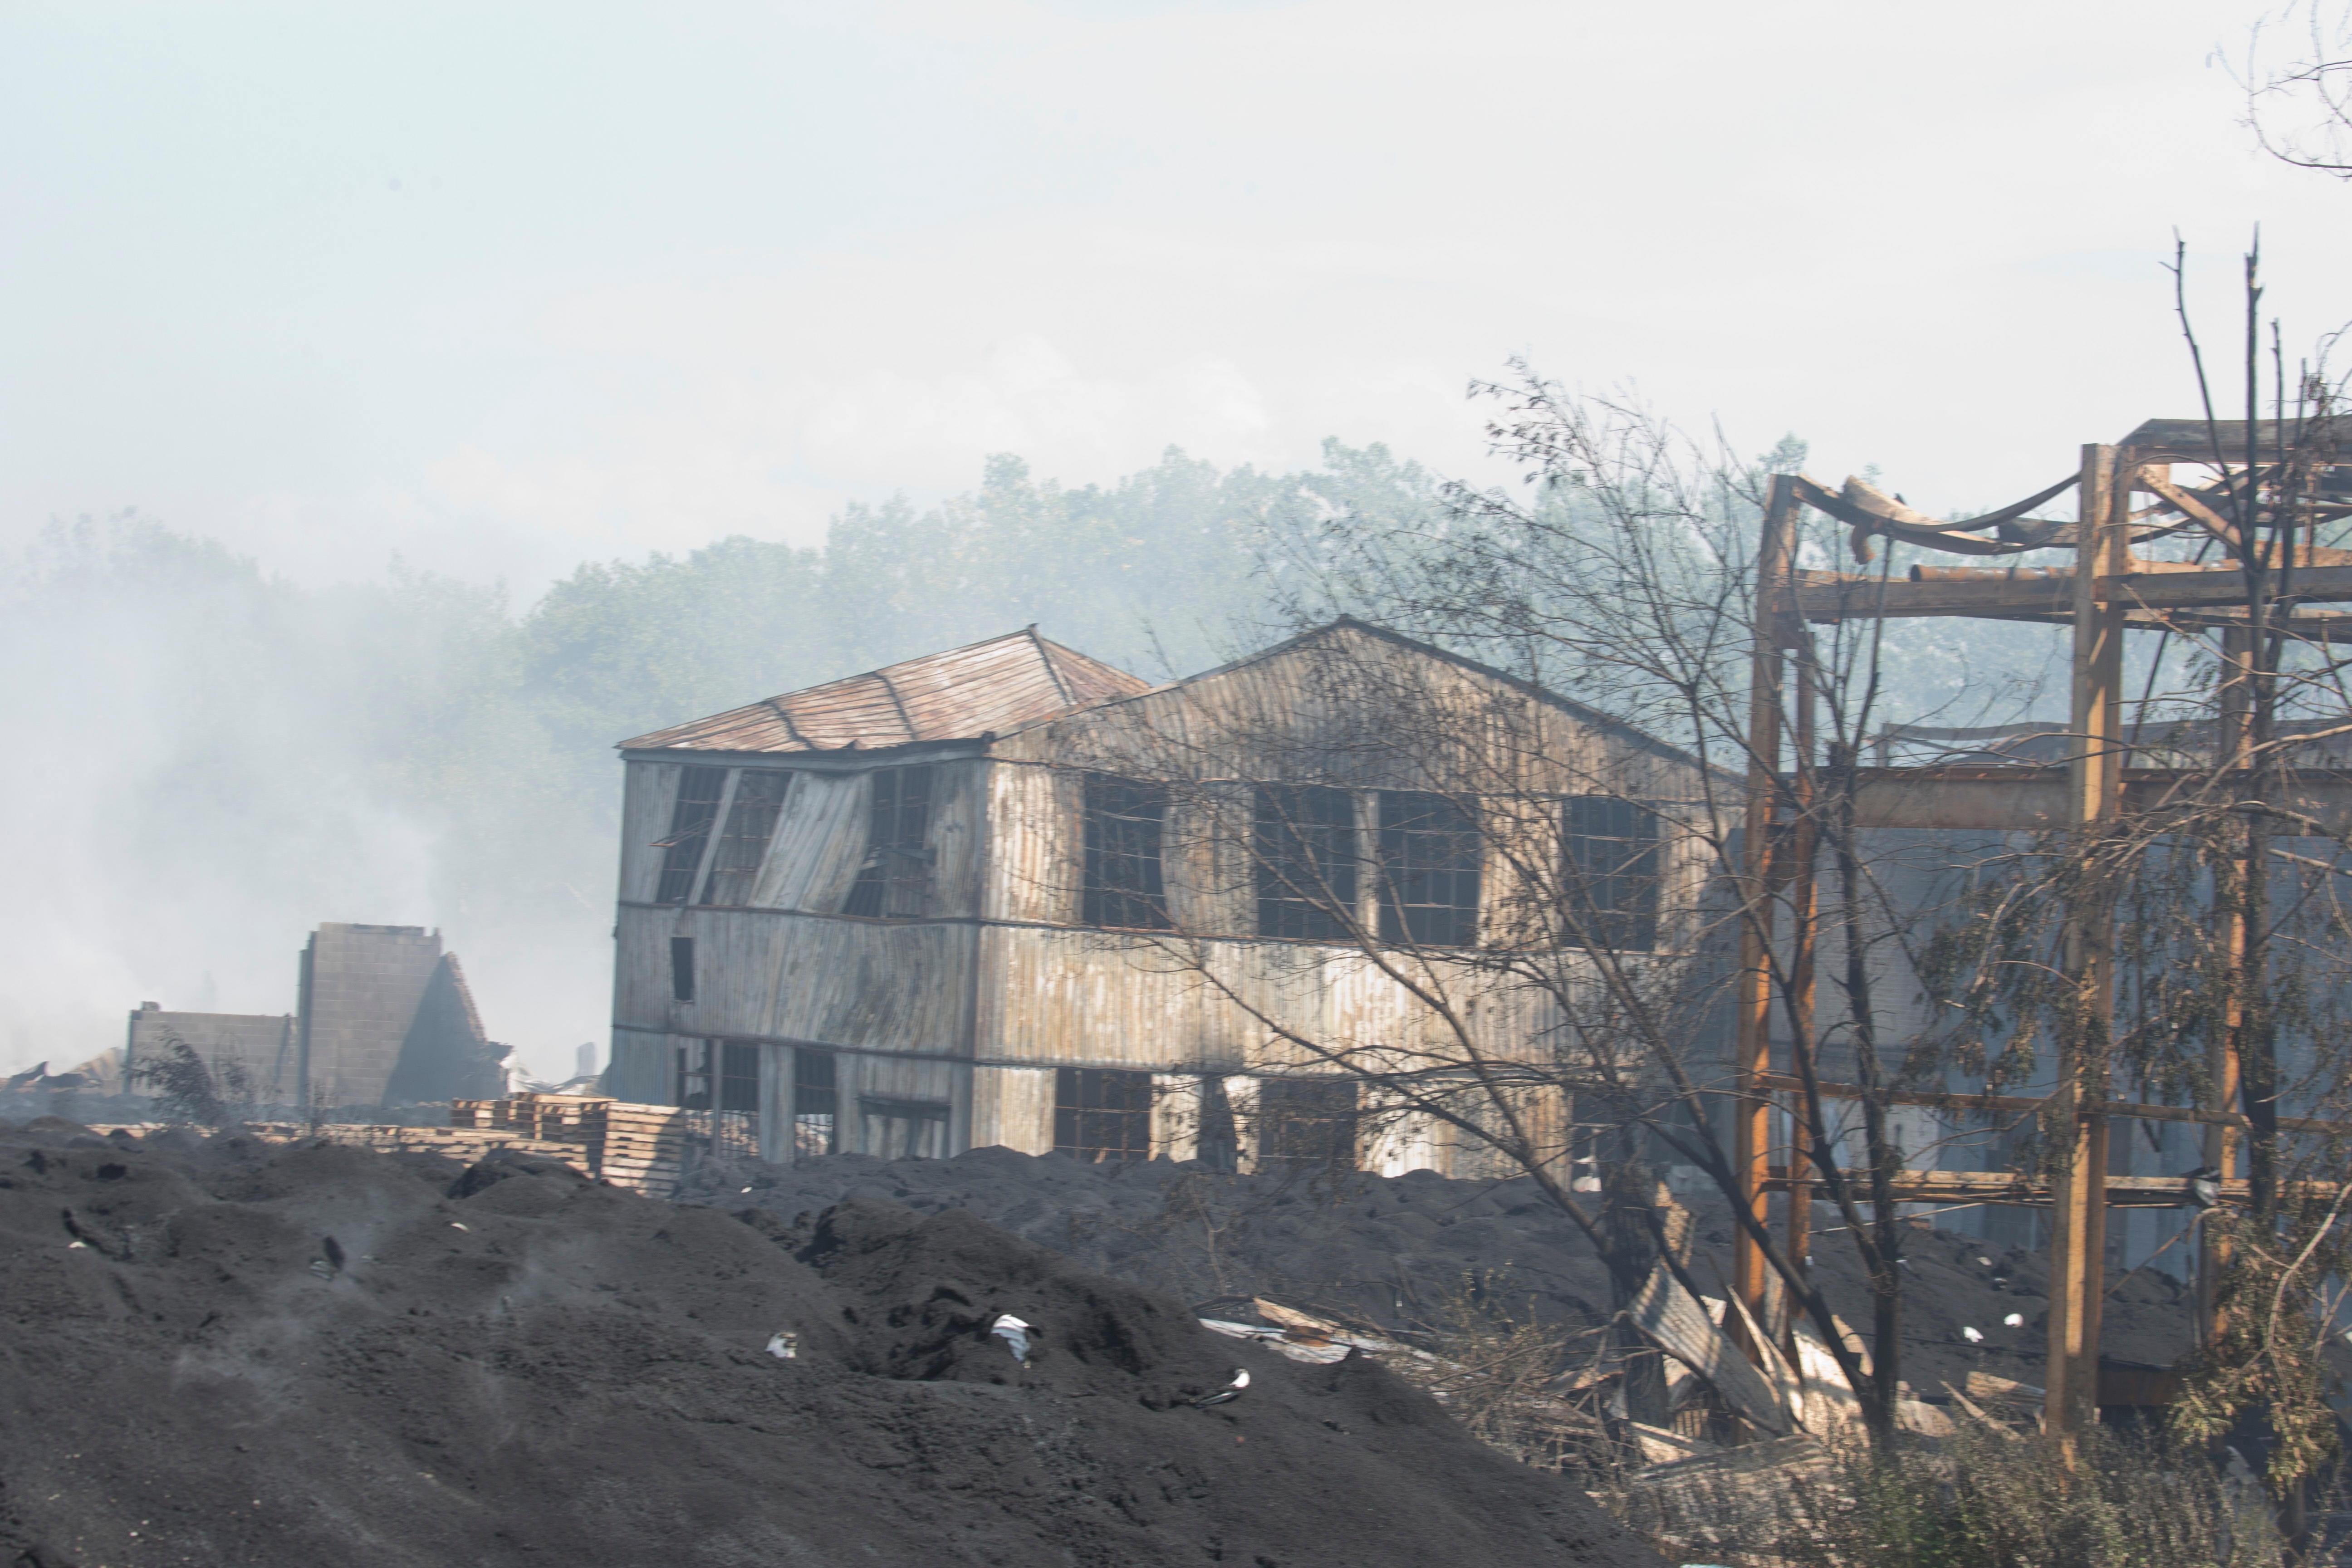 Firefighters had to use heavy equipment to search through the rubble e site of Wednesday's fire at High Tread International in Lockport before finding missing teen Joe Phillips. (John Hickey/News file photo)